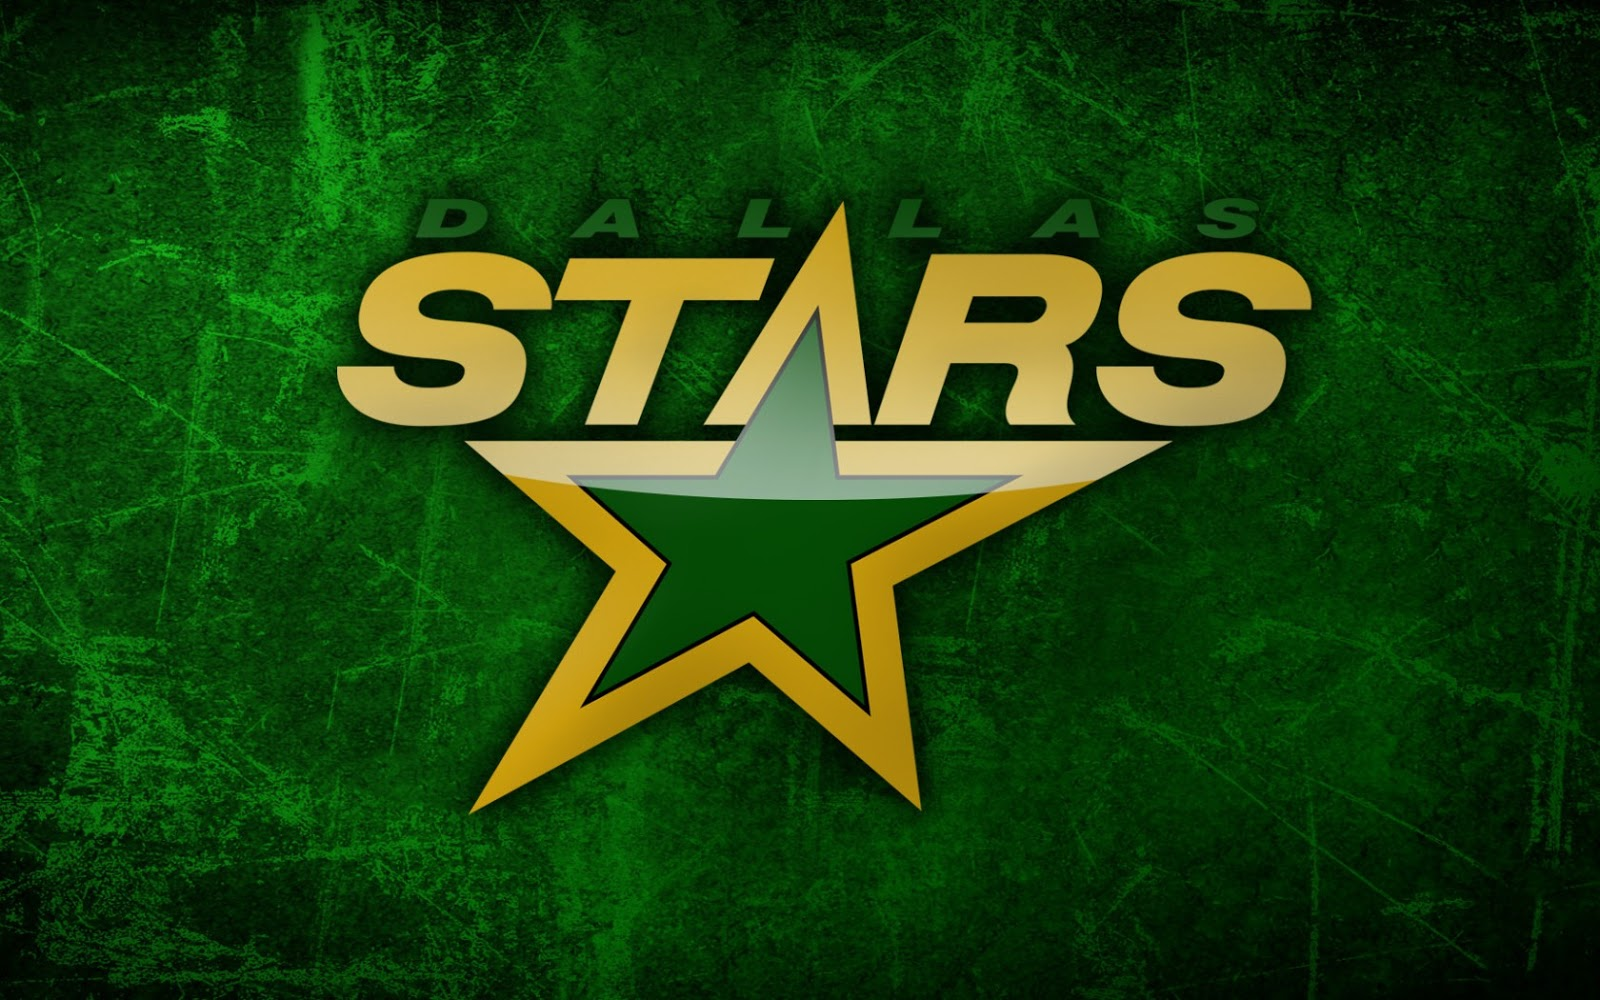 dallas stars - photo #12